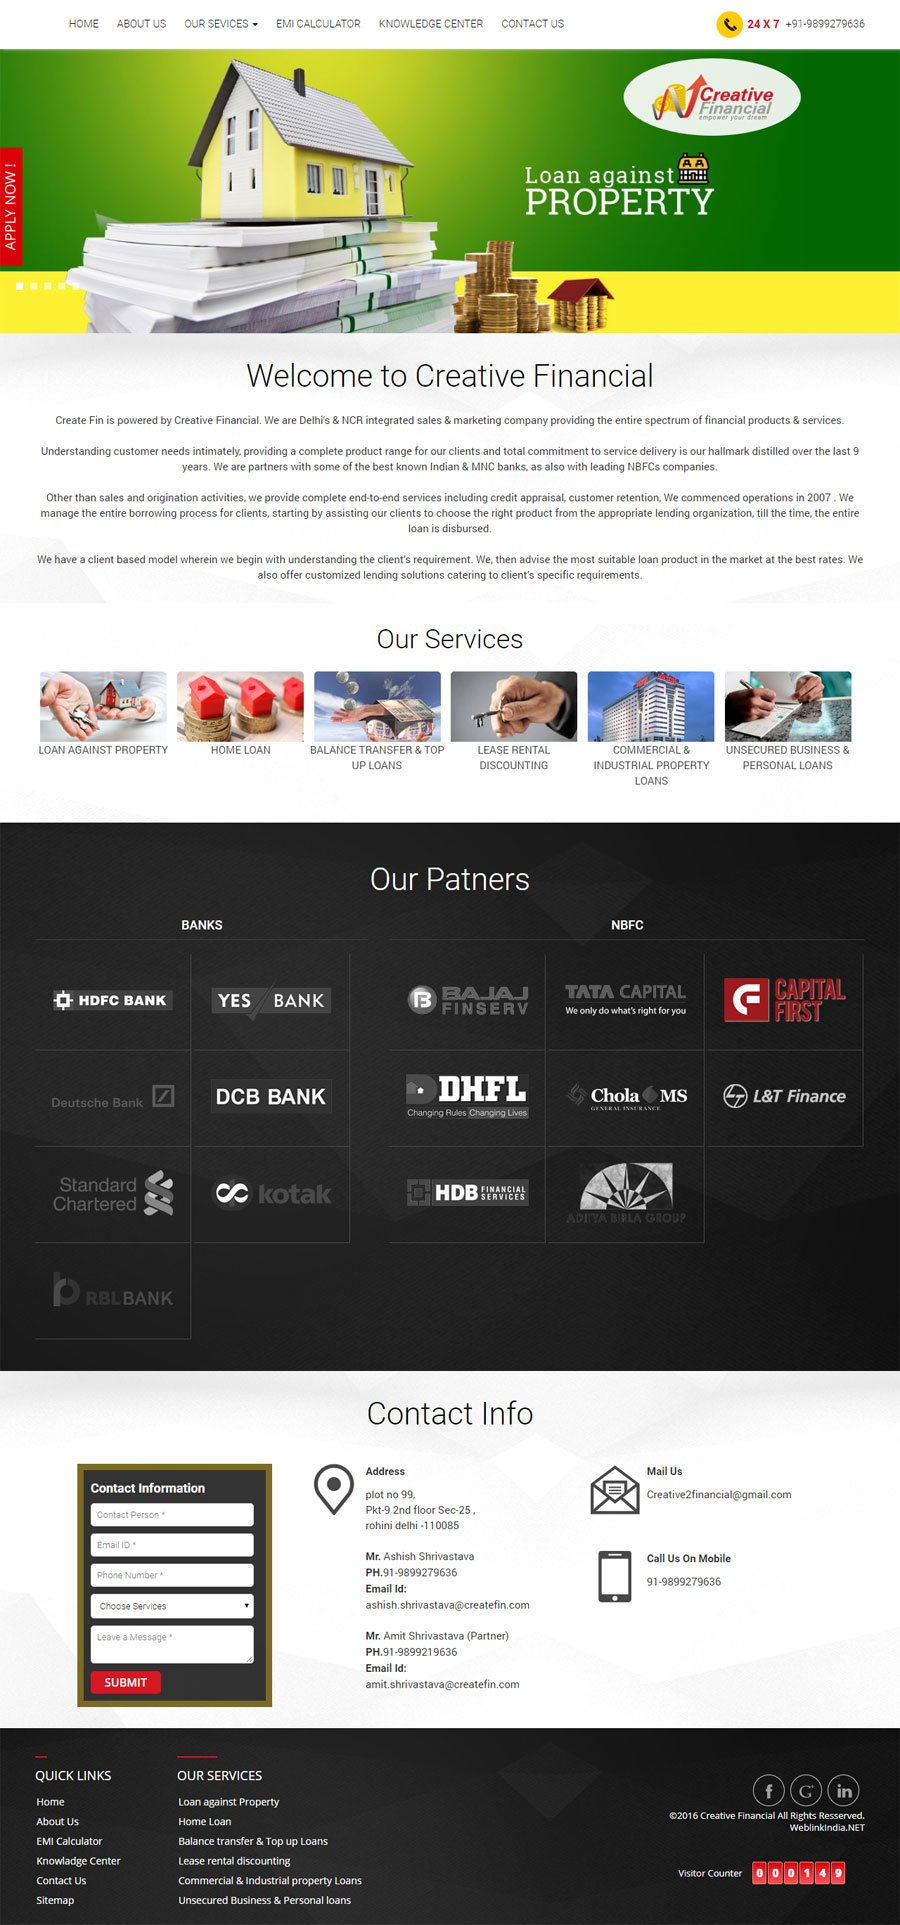 CREATIVE FINANCIAL - Web Design Portfolio